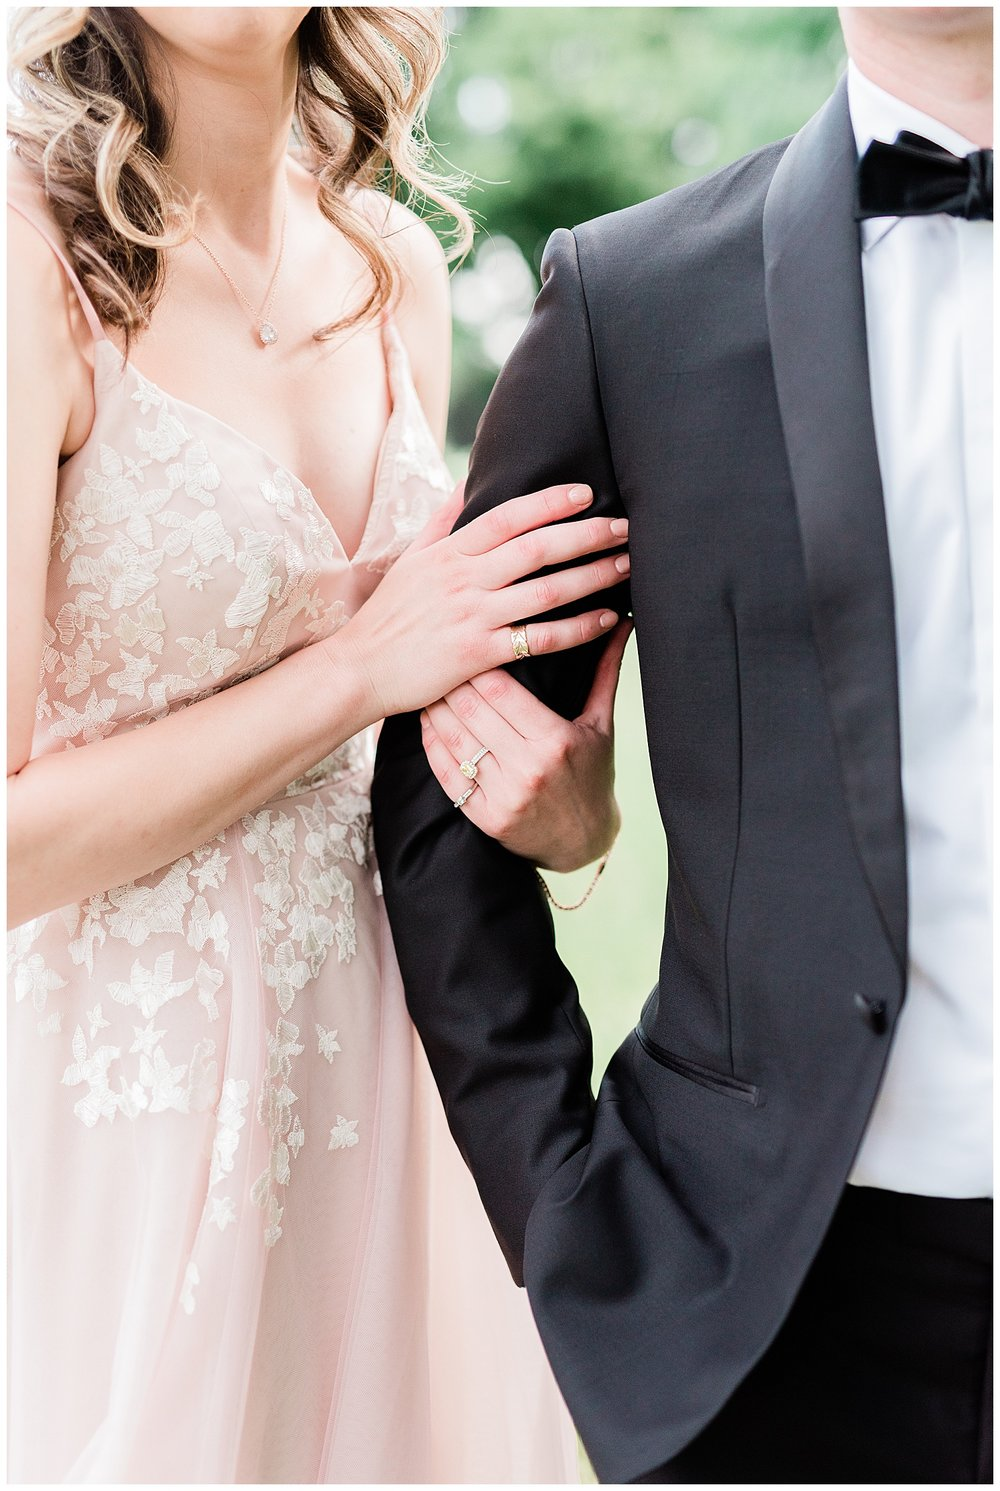 Upper Montclair Country Club Wedding | Pink Wedding Dress | Montclair, NJ | www.redoakweddings.com